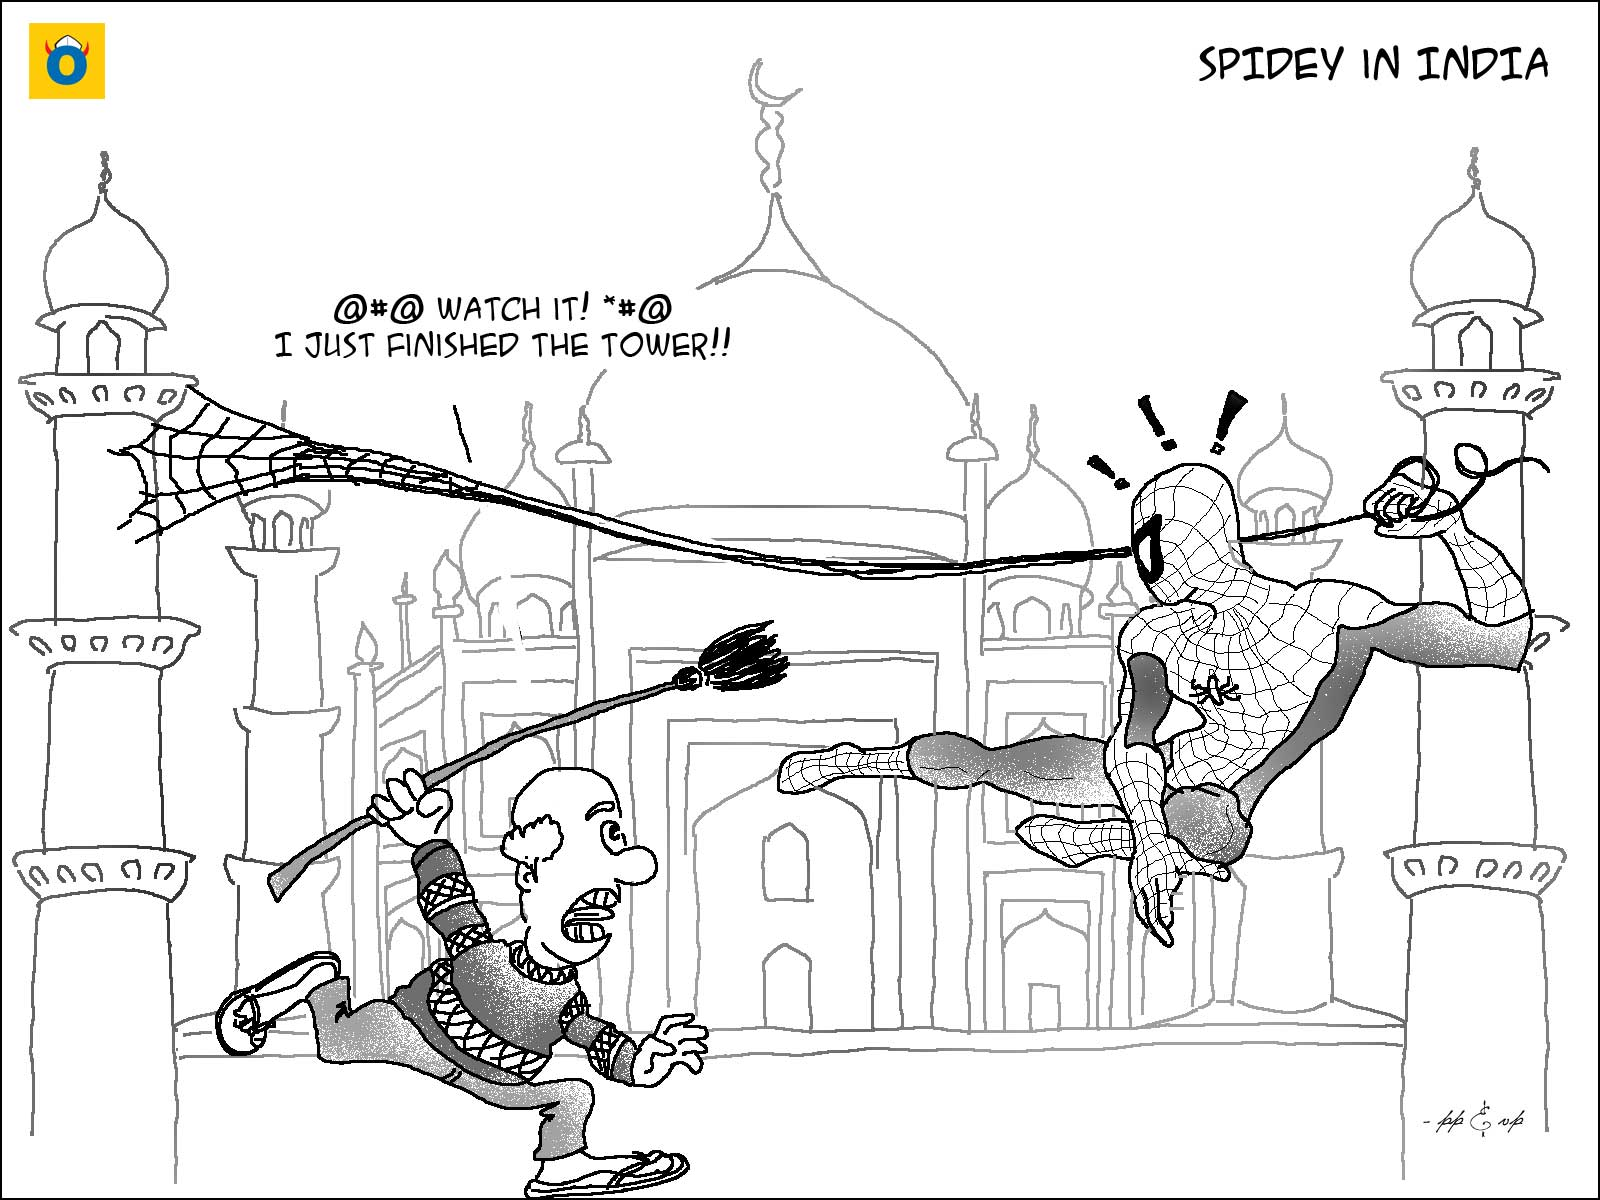 Misadventures of the Amazing Spiderman